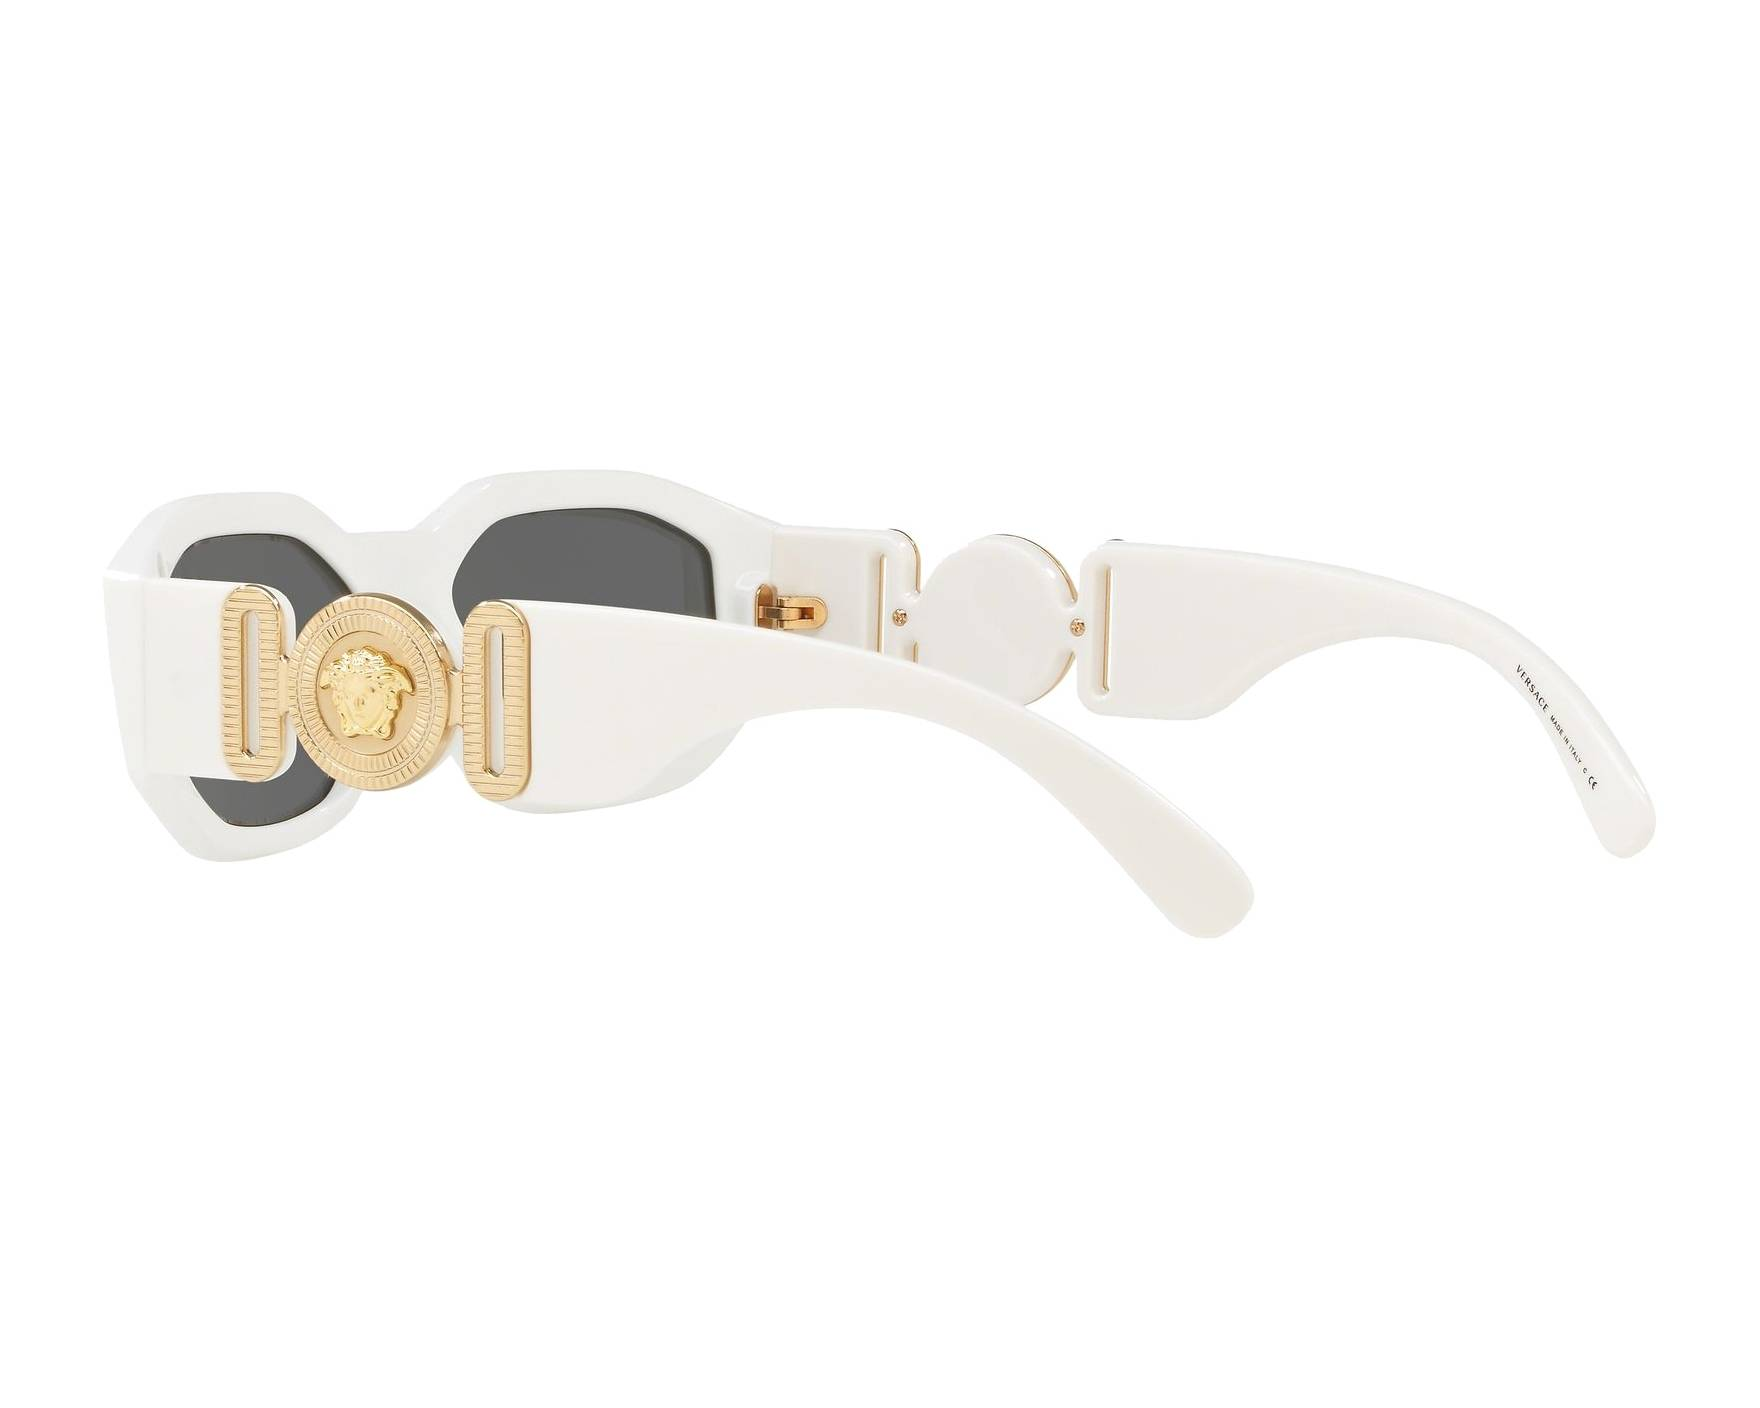 961f46c26734 Sunglasses Versace VE-4361 401-87 53-18 White 360 degree view 5